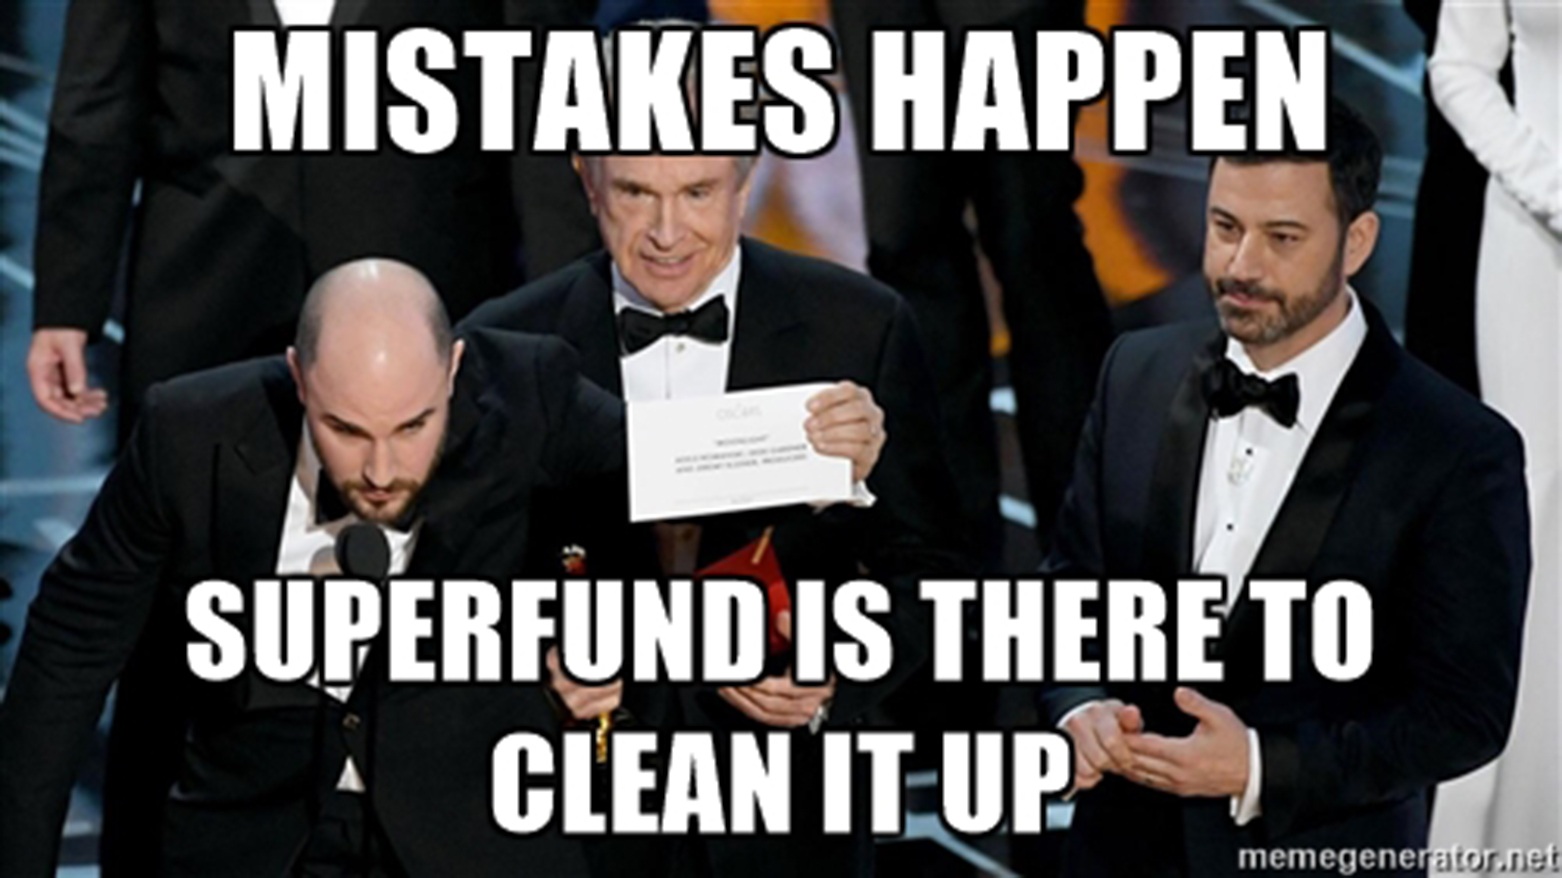 Superfund Research Center Meme made with UC Comm Department